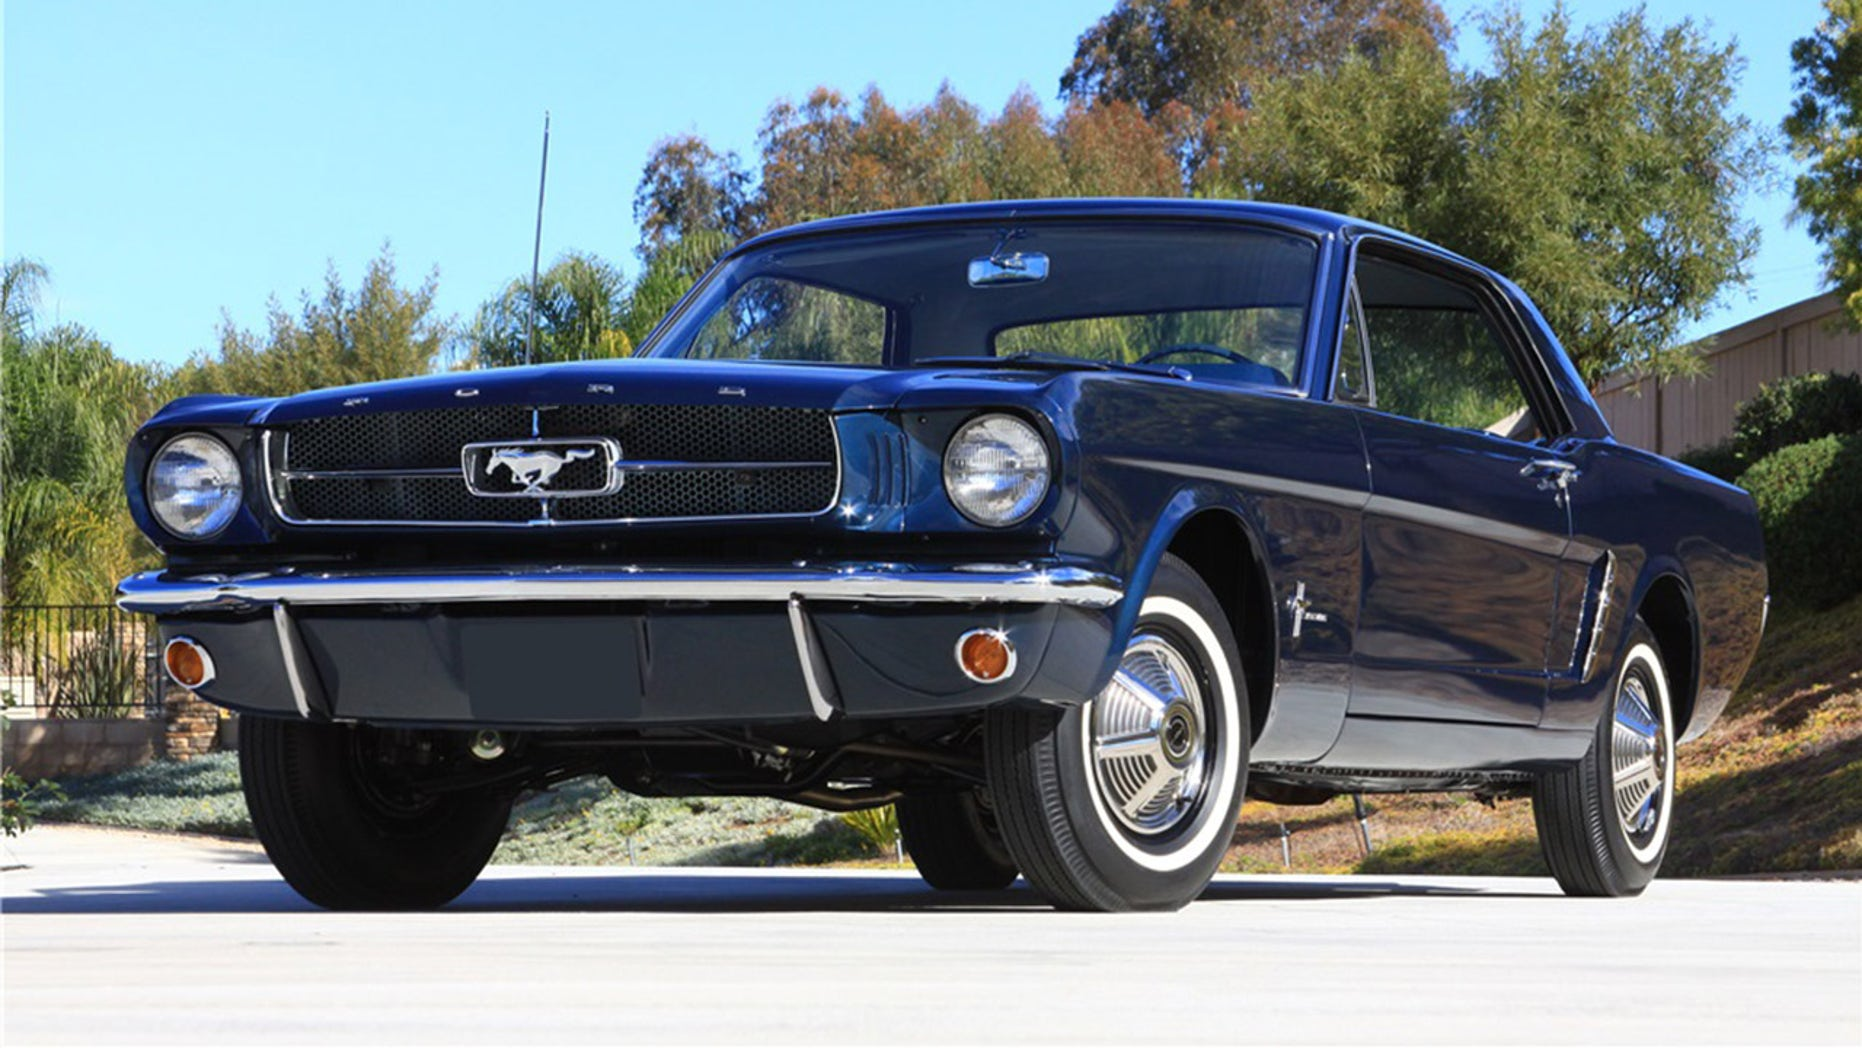 Ford Ford Auction >> The First Mustang Coupe Ford Built Heads To Auction Fox News